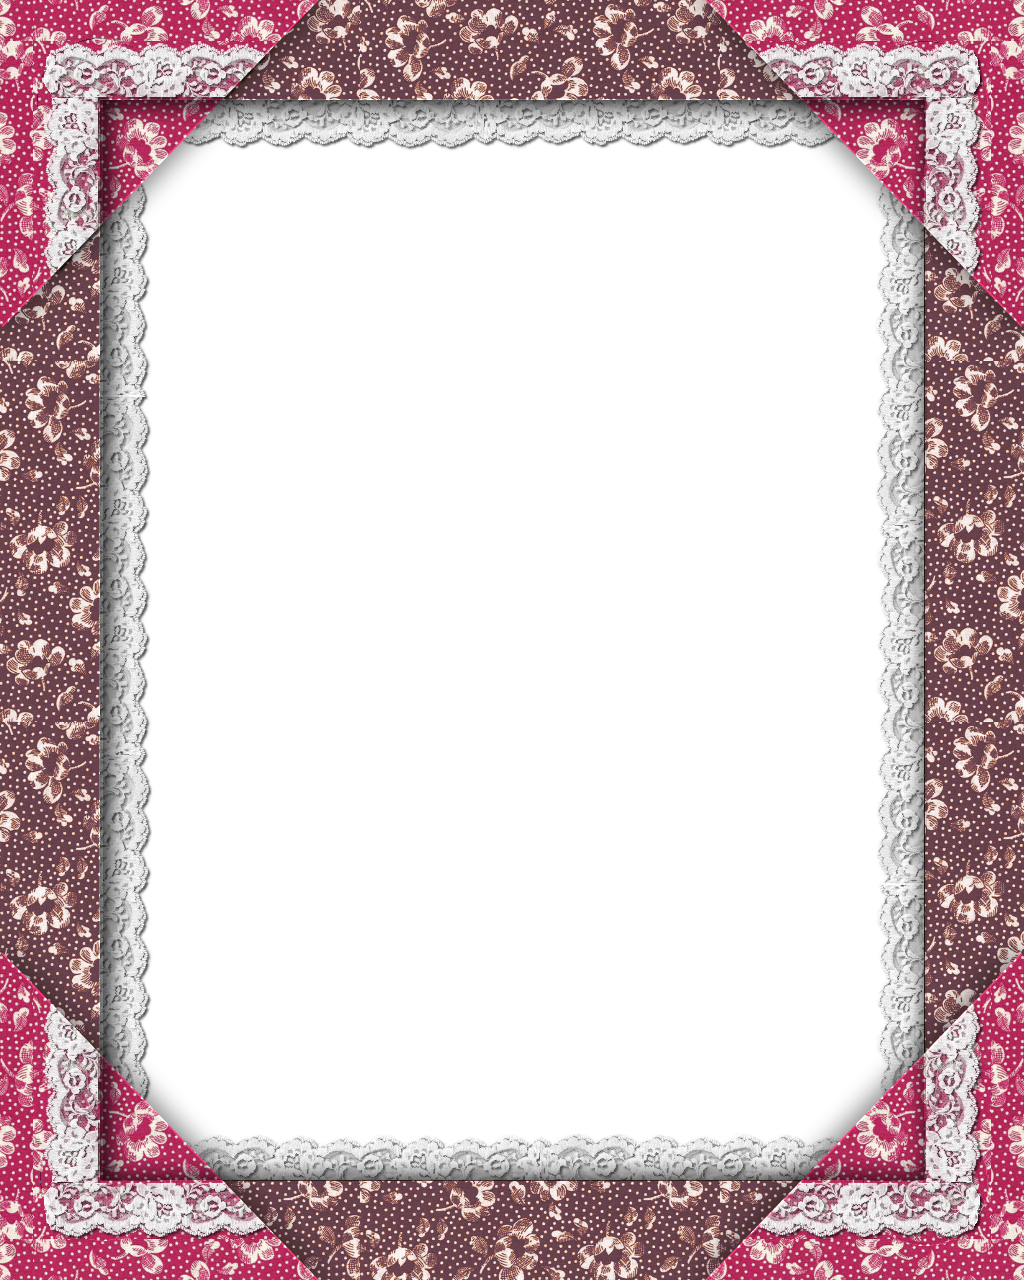 Diploma clipart pink. And brown transparent png